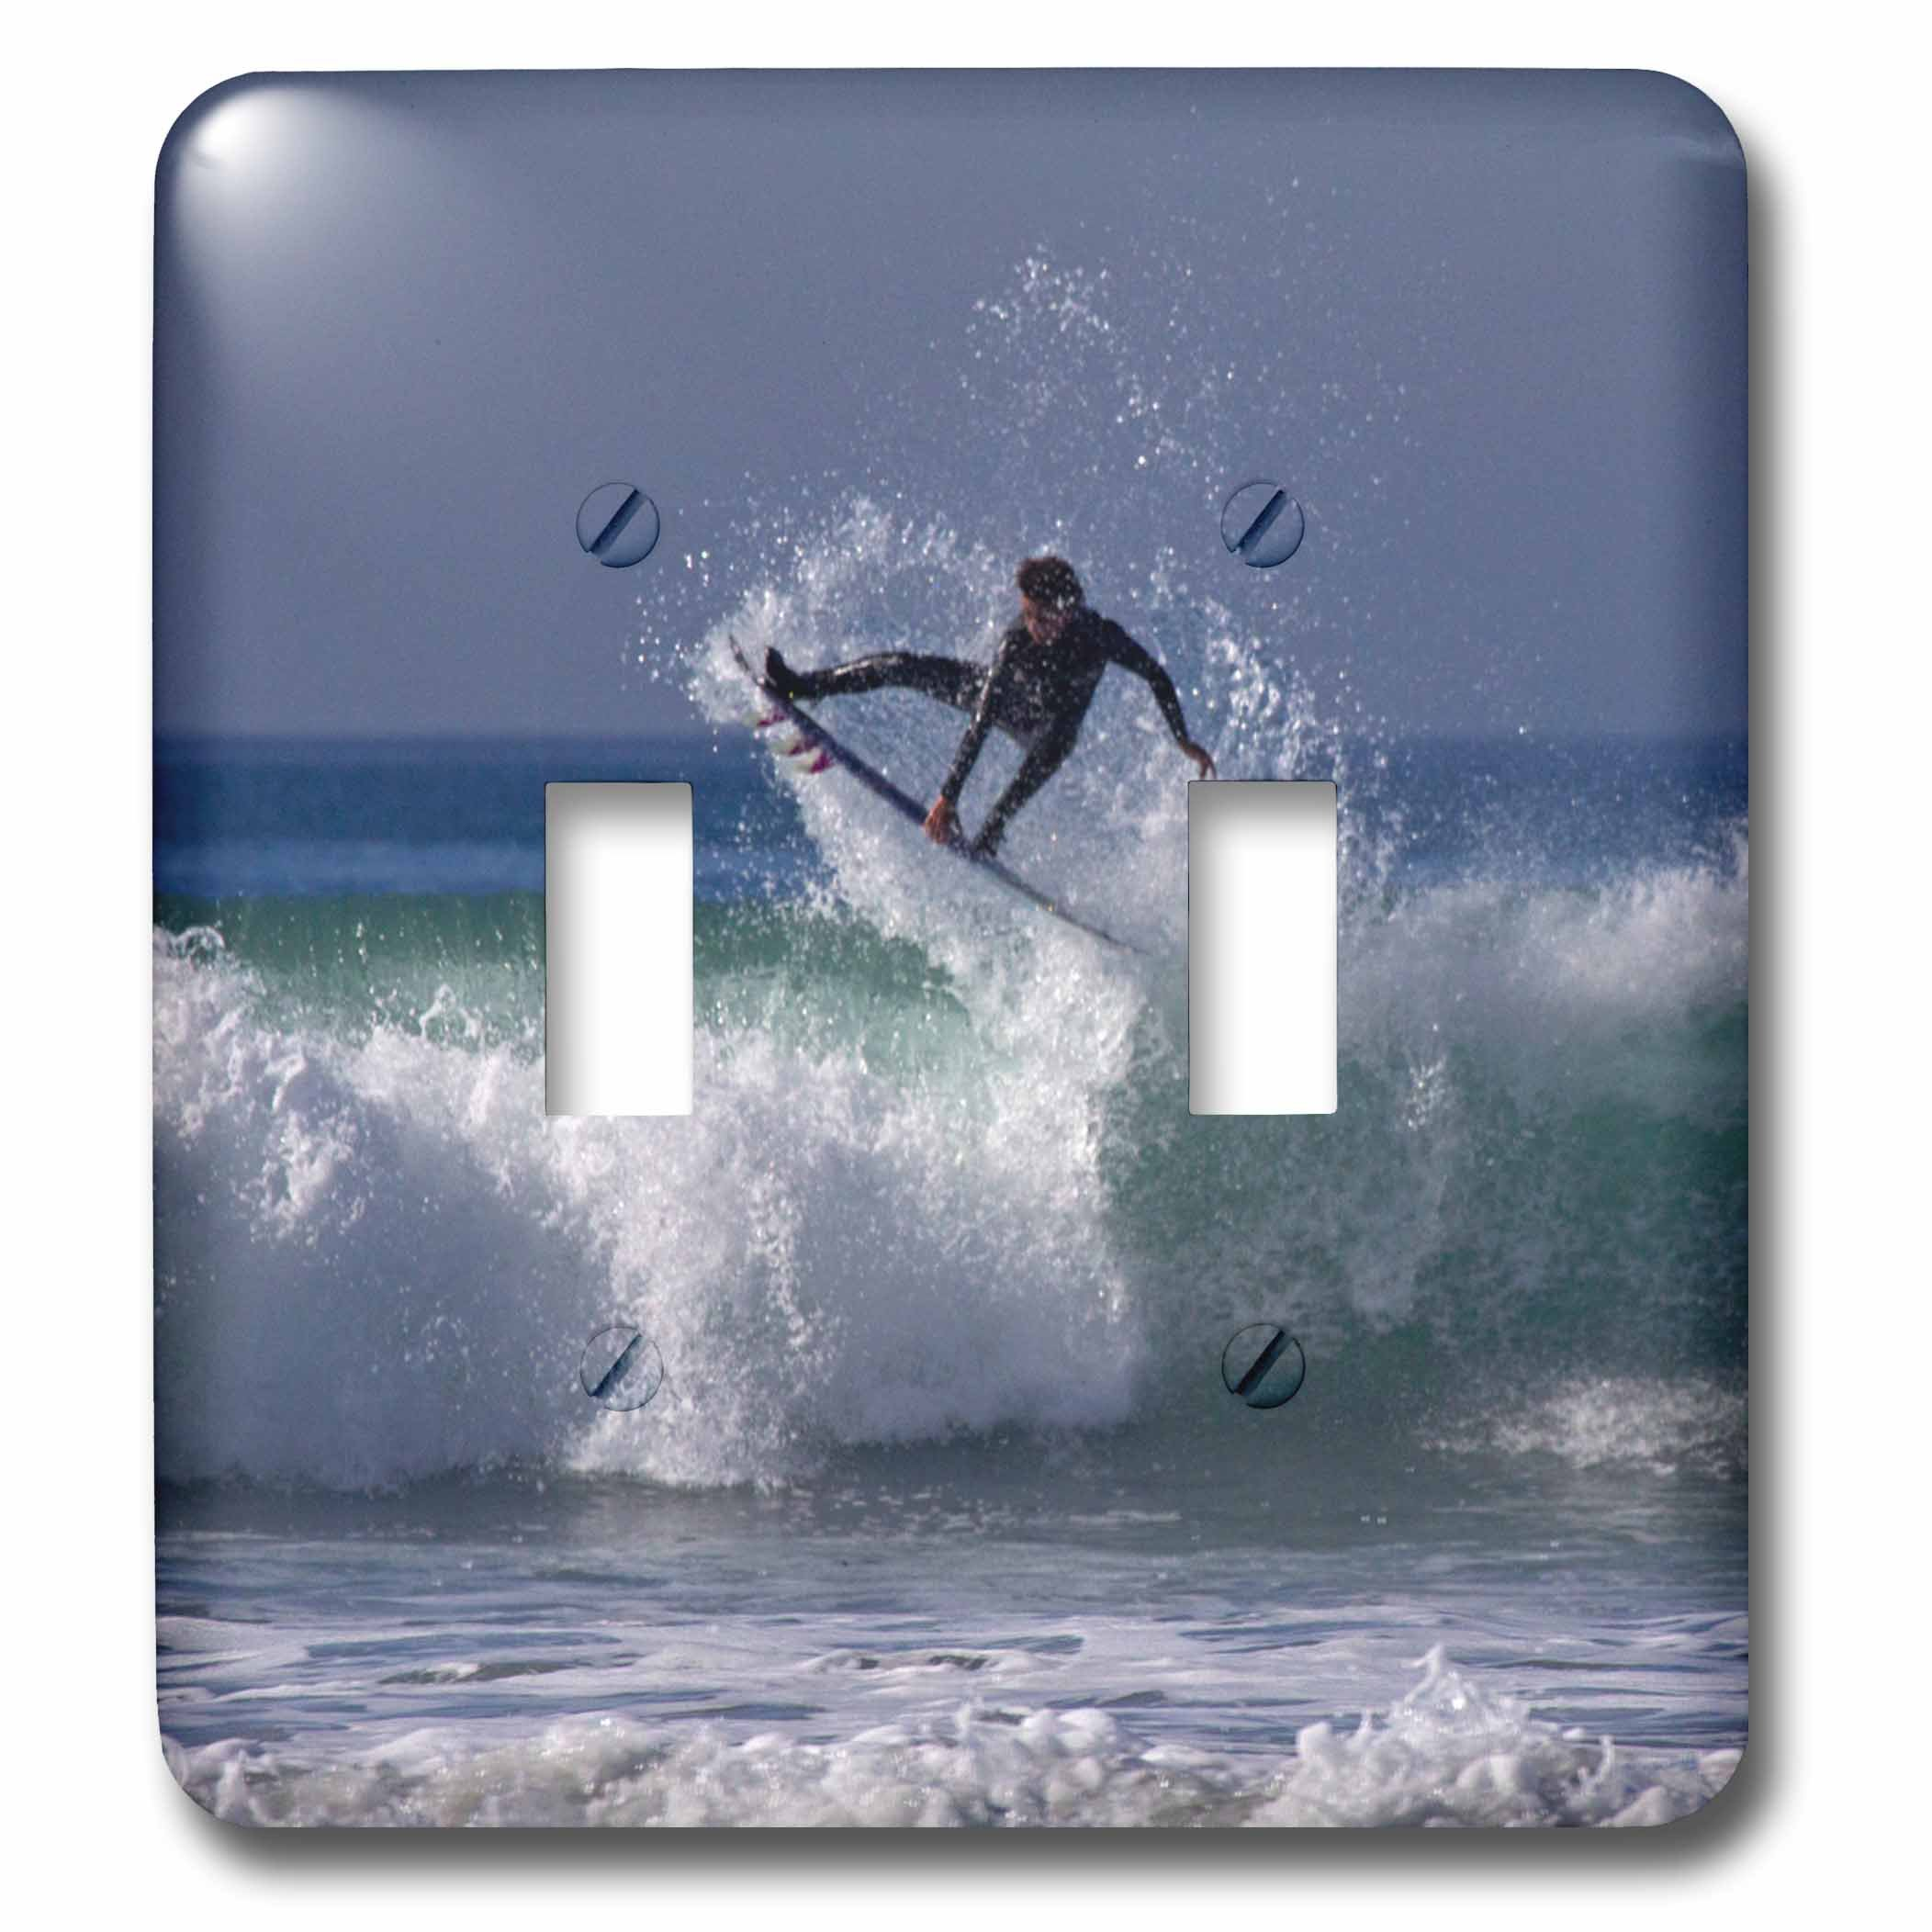 3D Rose lsp_230166_2 California, San Diego. Surfer Catching Air At Cardiff by the Sea. Double Toggle Switch